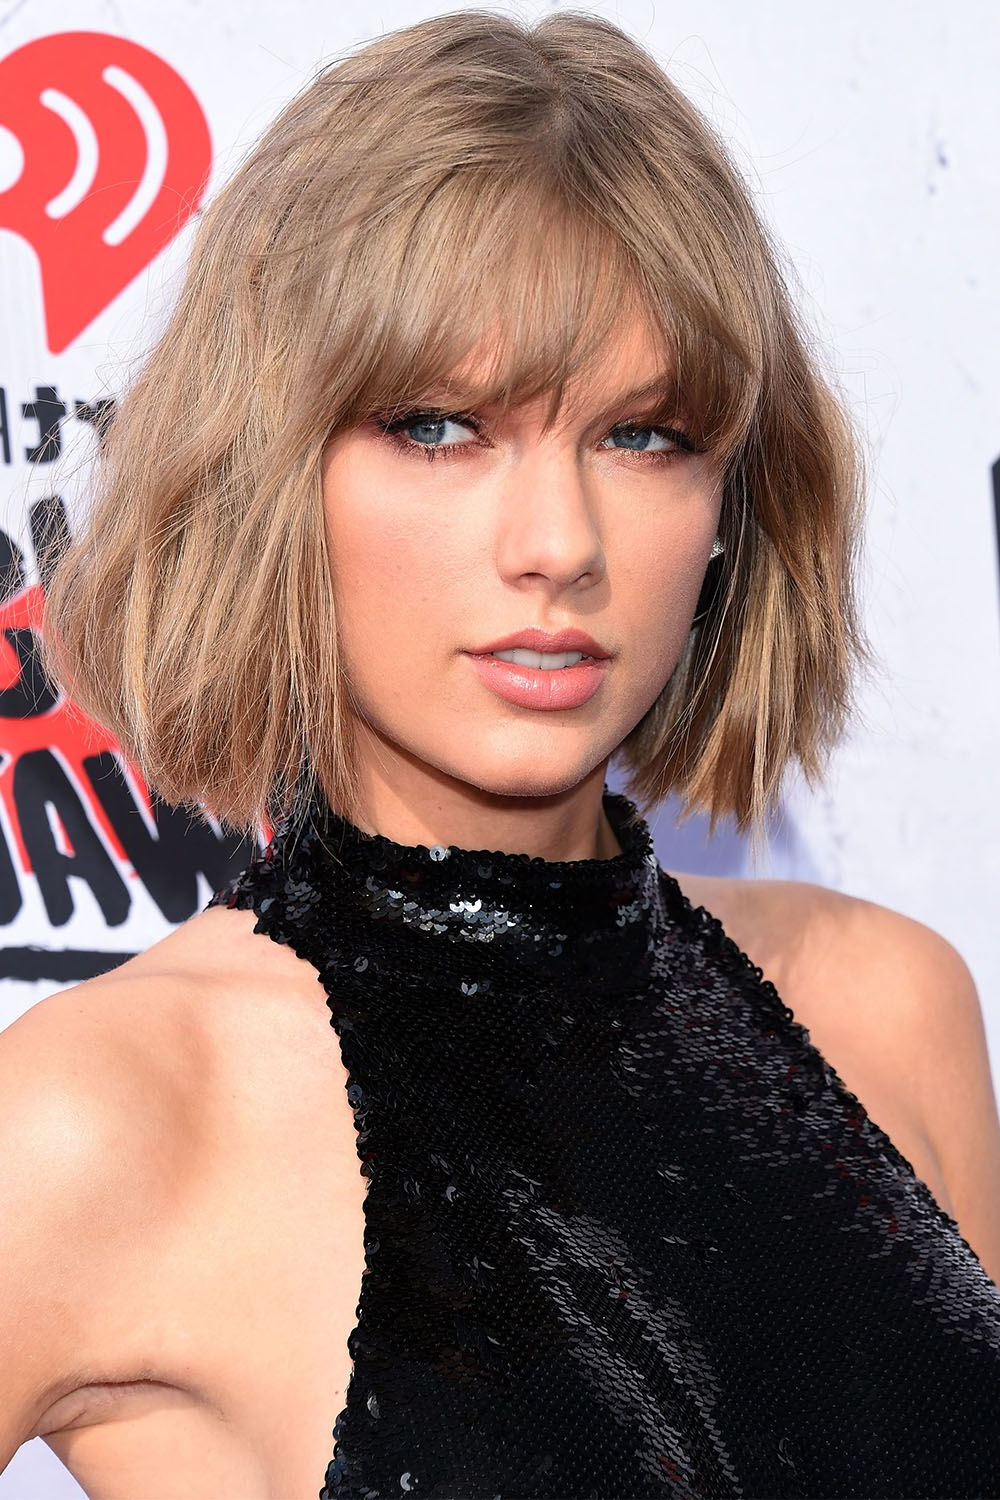 Taylor Swift Hairstyles – Taylor Swift's Curly, Straight, Short In Face Framing Short Hairstyles (View 15 of 25)